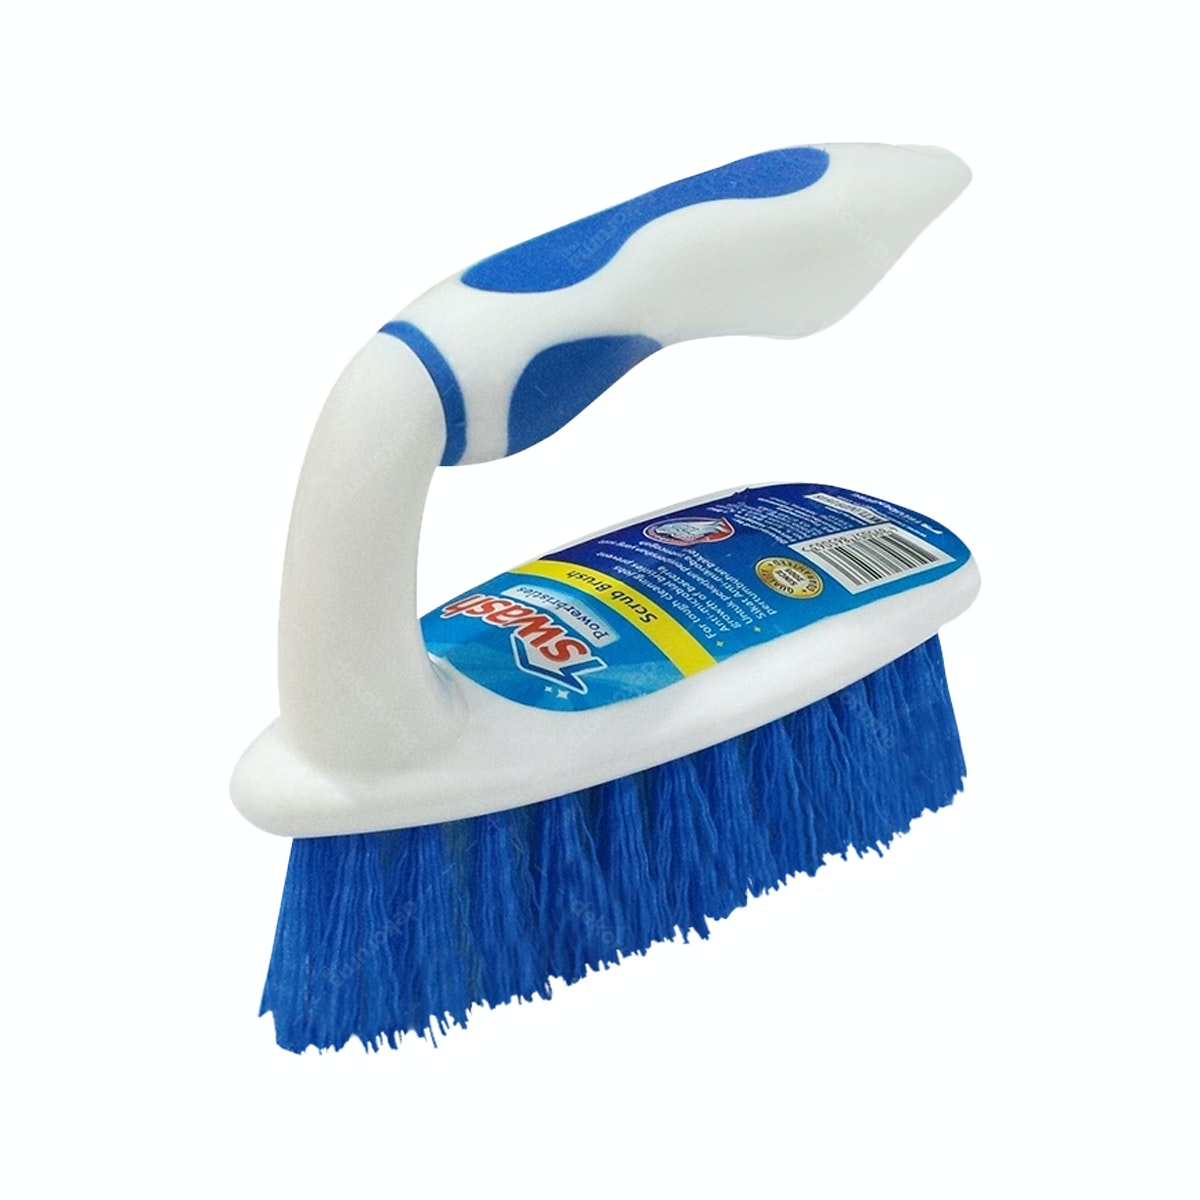 Swash Scrub Brush Anti Bakteri 65063